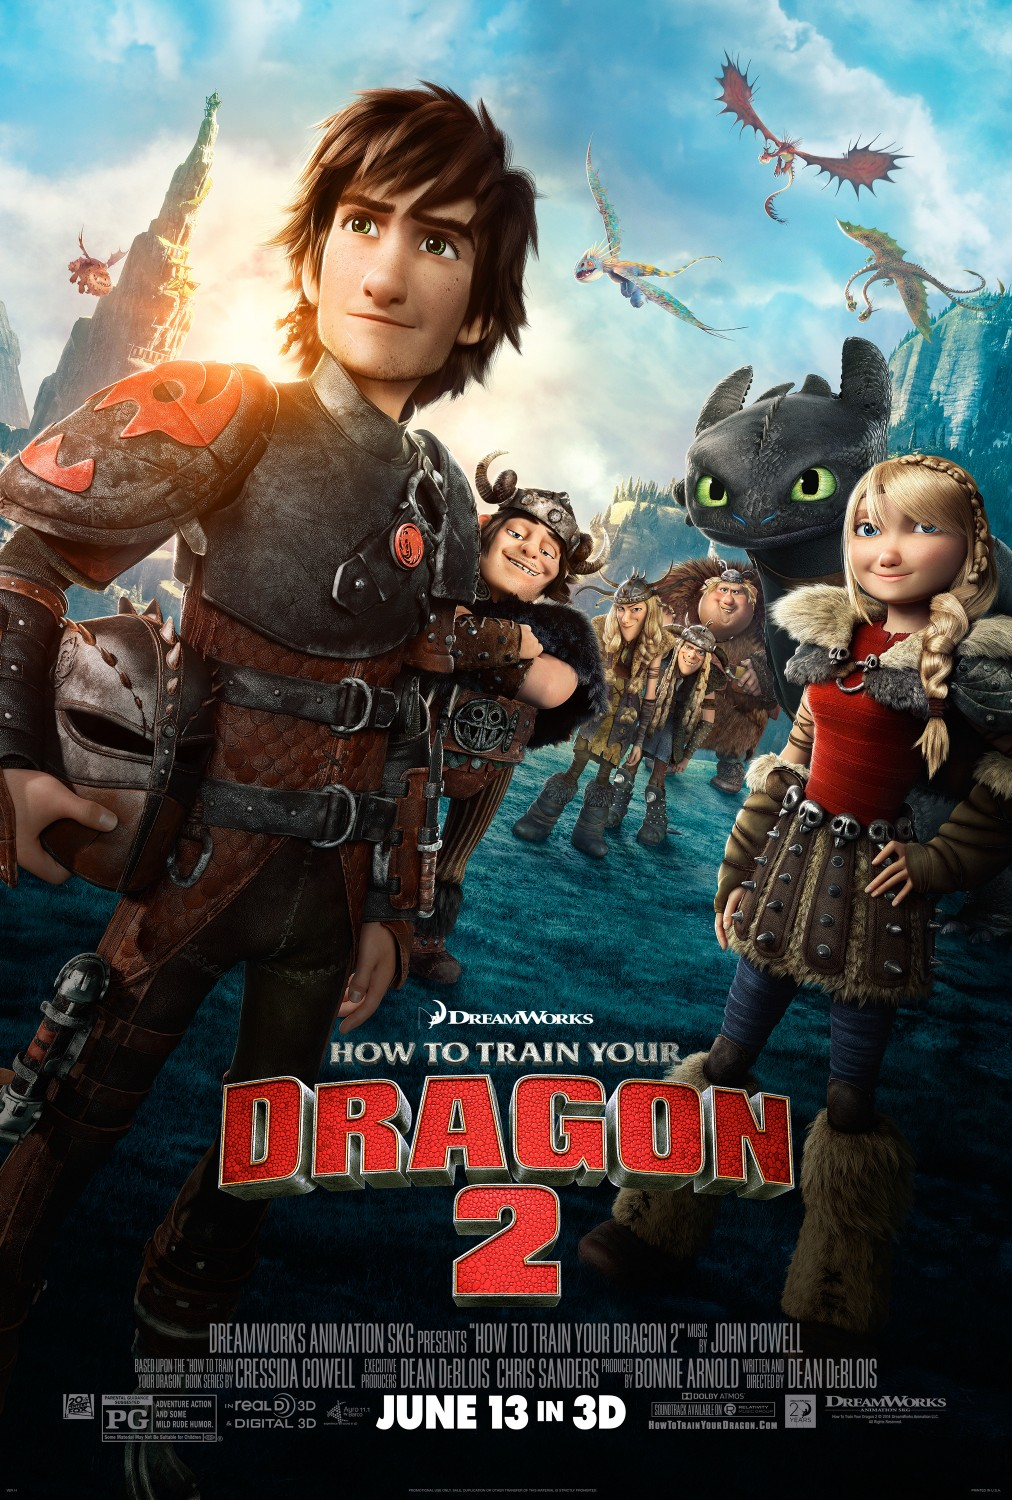 Image result for how to train your dragon 2 movie poster